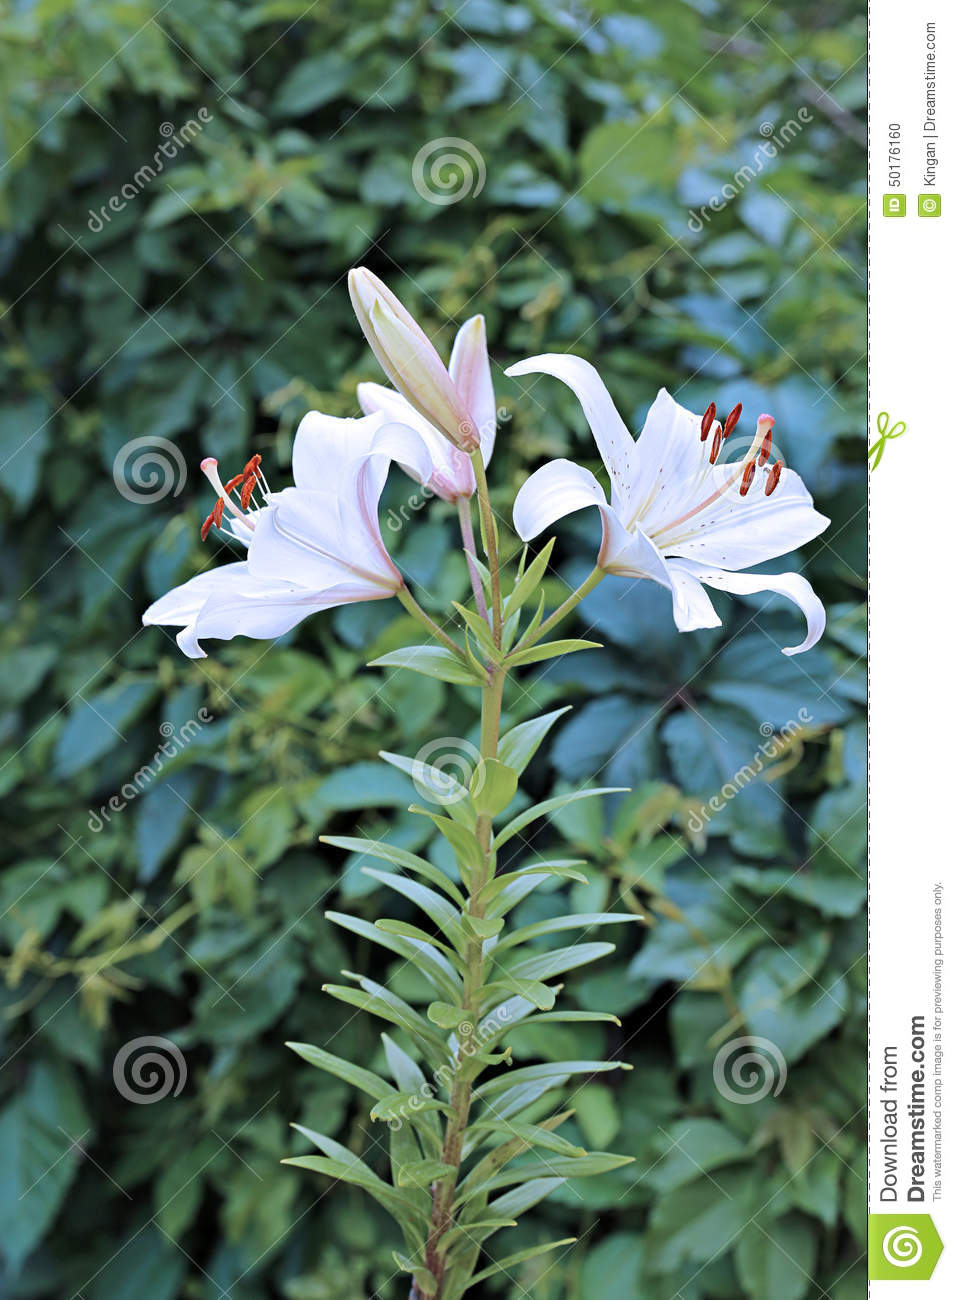 Many flowers and buds of white lilies stock photo image of allergy download many flowers and buds of white lilies stock photo image of allergy petals izmirmasajfo